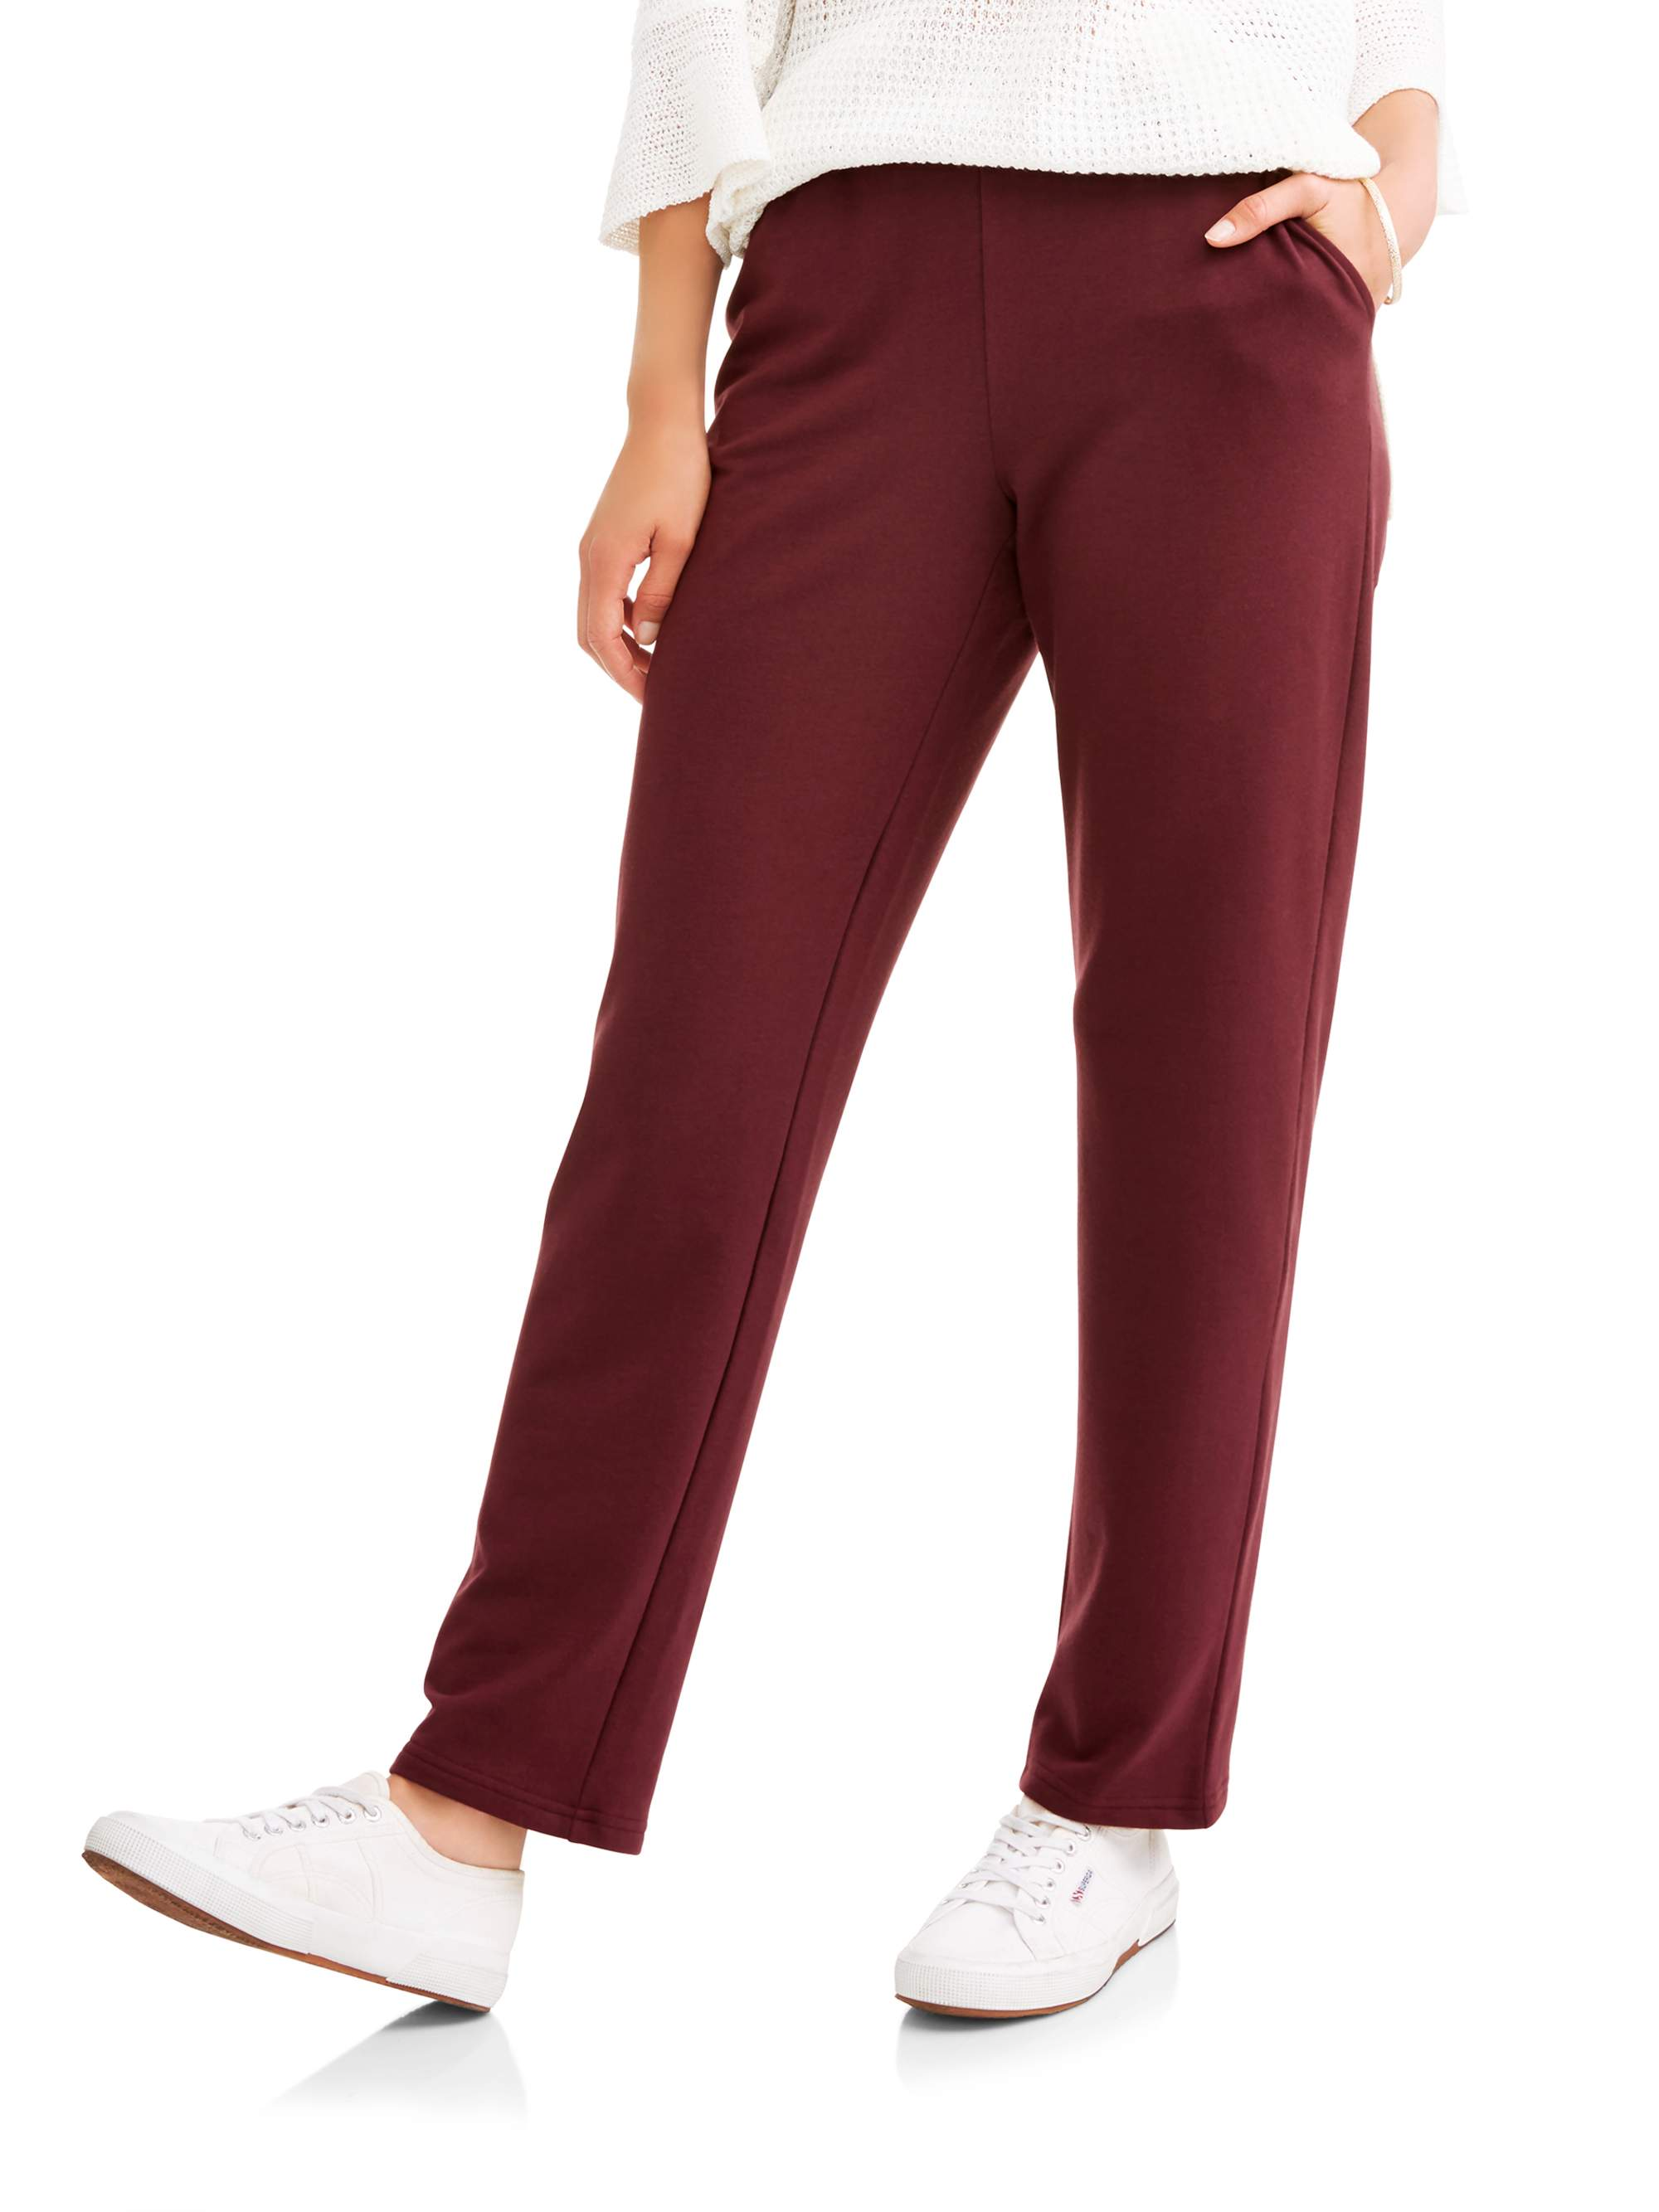 Women's Knit Pull On Pants